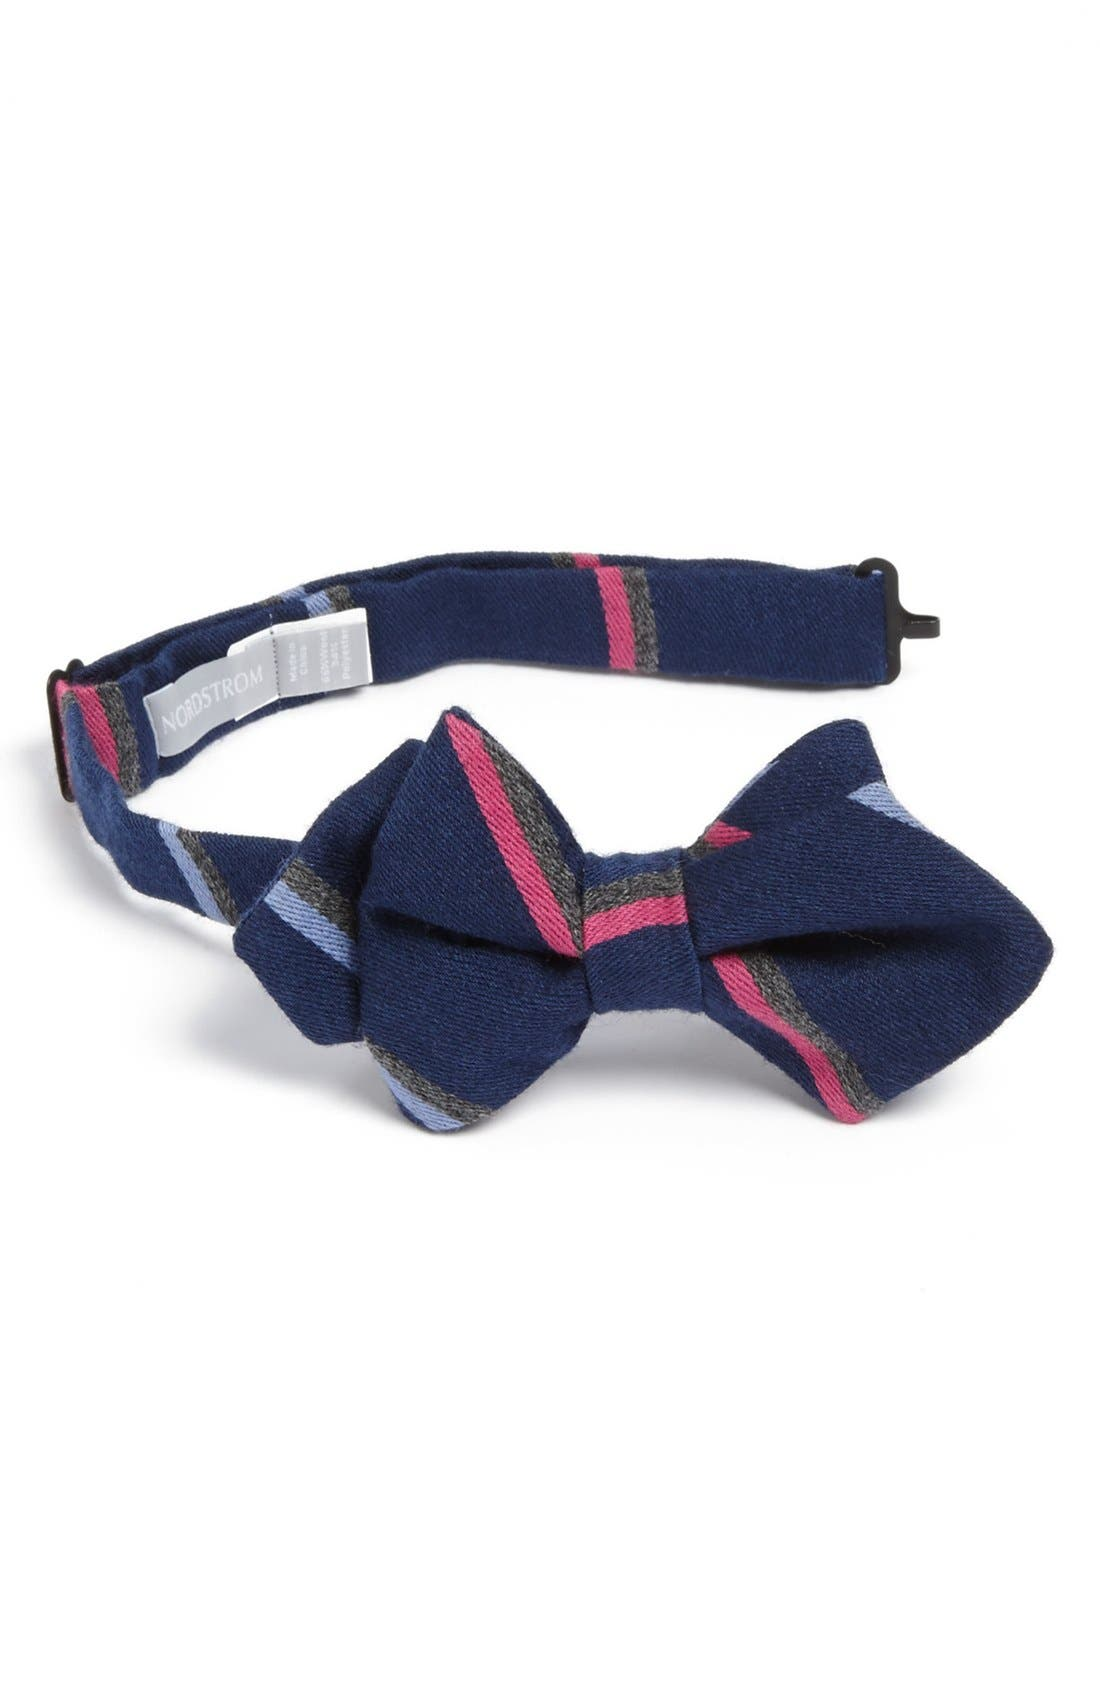 Alternate Image 1 Selected - Nordstrom Wool Blend Bow Tie (Boys)